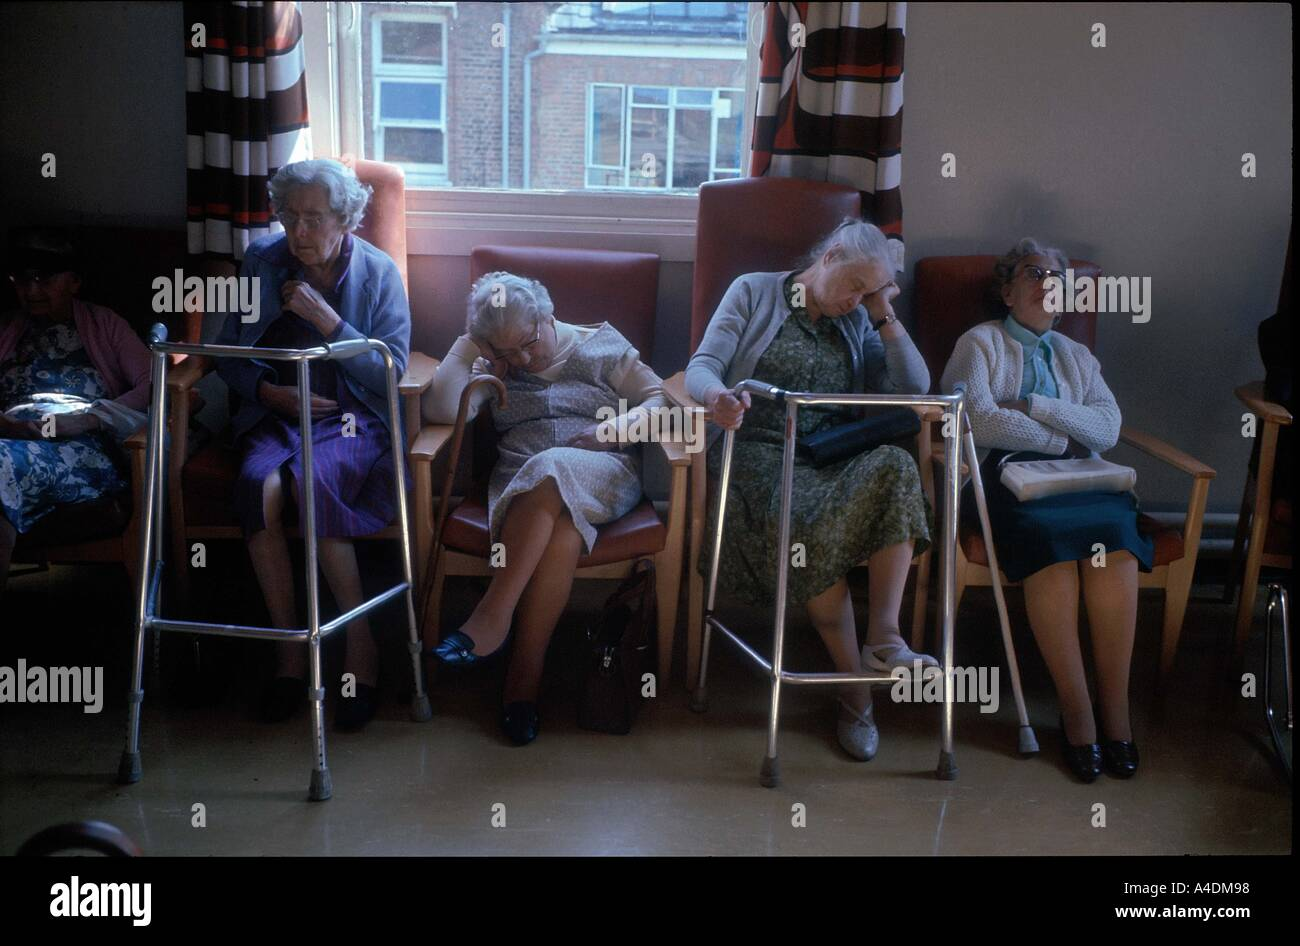 Elderly Women Asleep In Their Armchairs With Their Zimmer Frames And